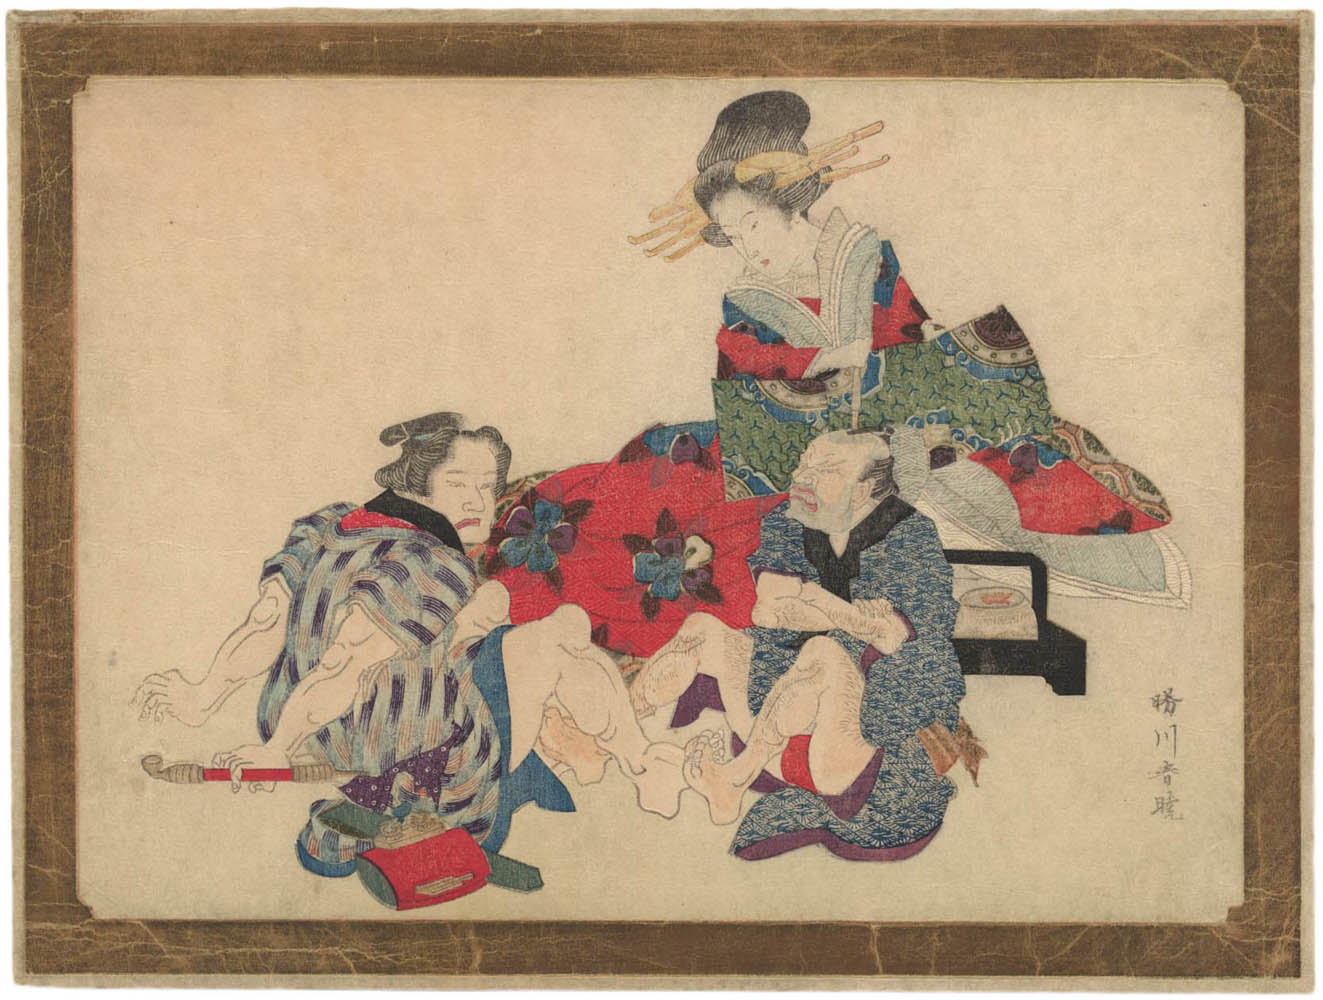 SHUNGYŌ (fl. ca. 1800-30). Courtesan. (Sold)